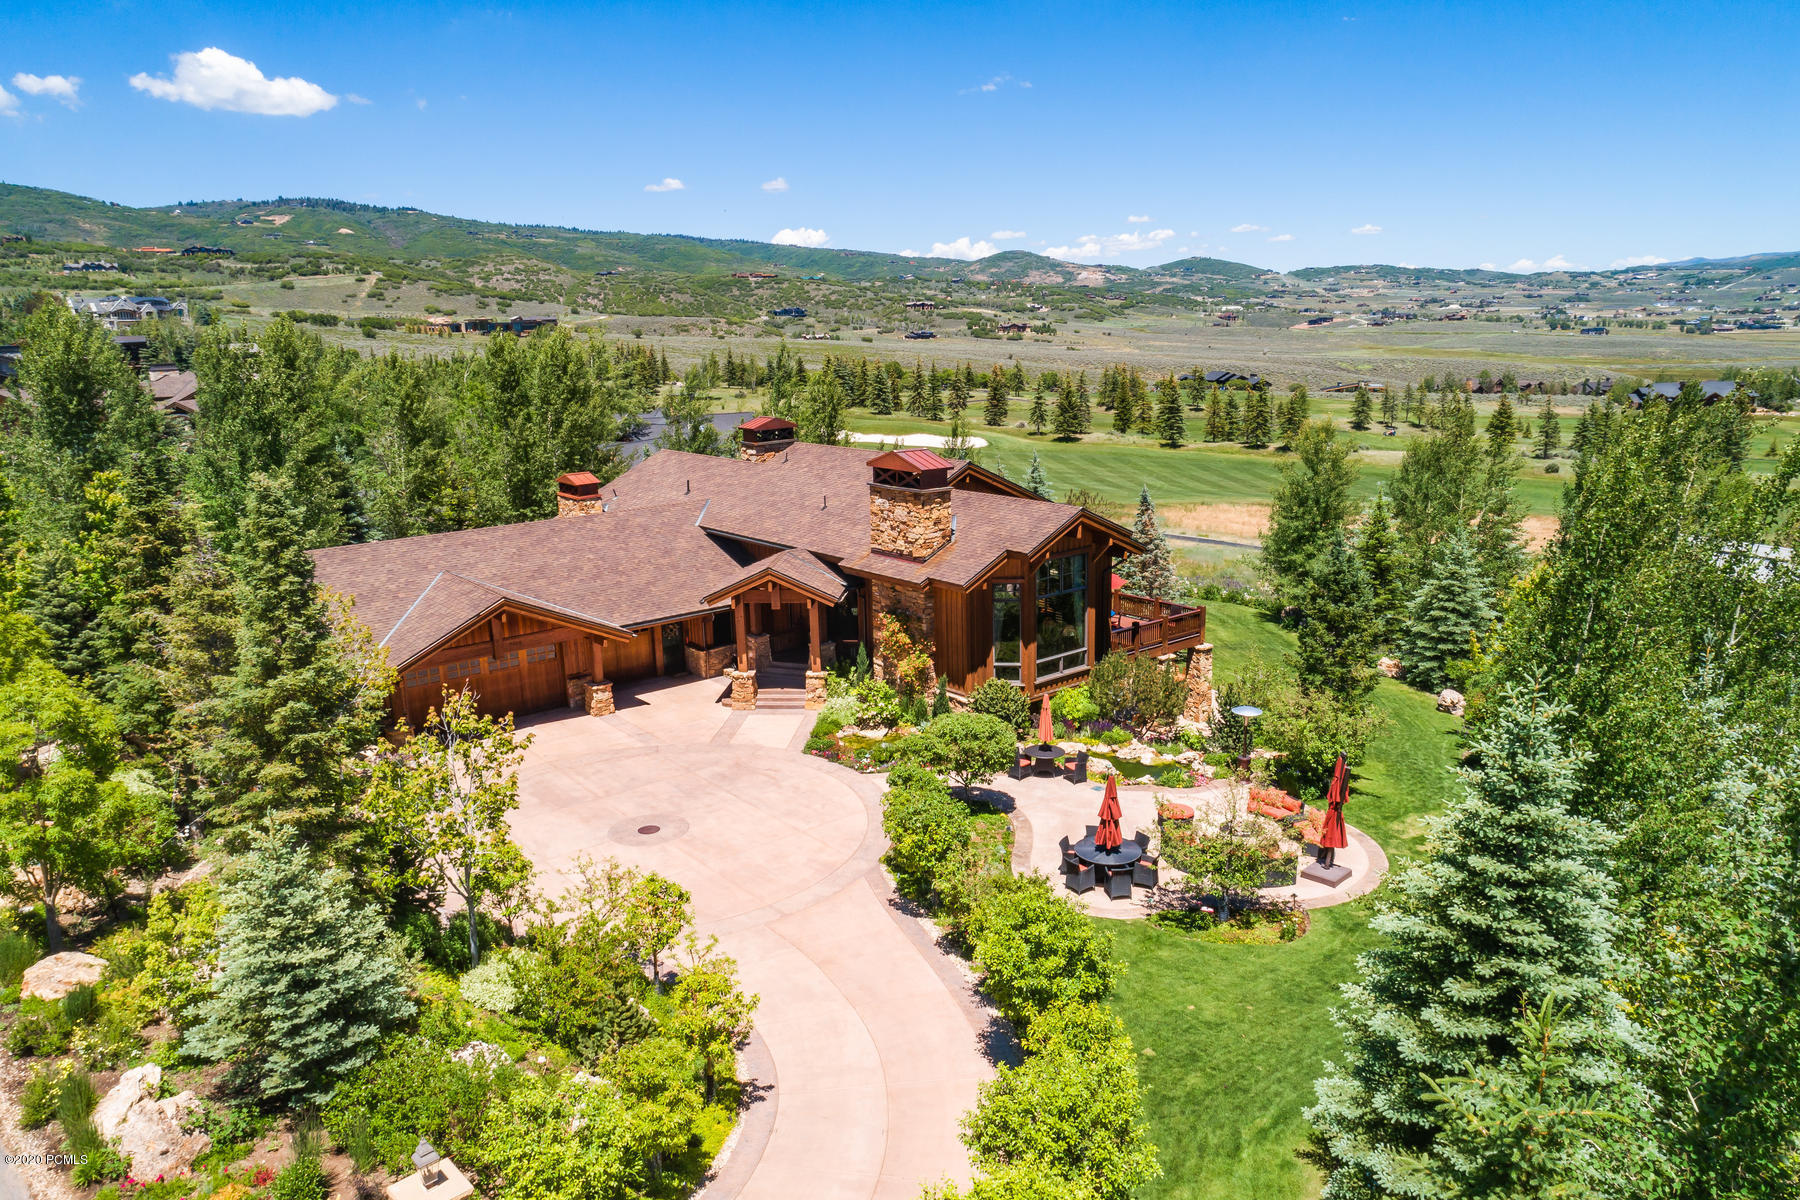 7662 Glenwild Drive, Park City, Utah 84098, 5 Bedrooms Bedrooms, ,6 BathroomsBathrooms,Single Family,For Sale,Glenwild,20190109112430415765000000